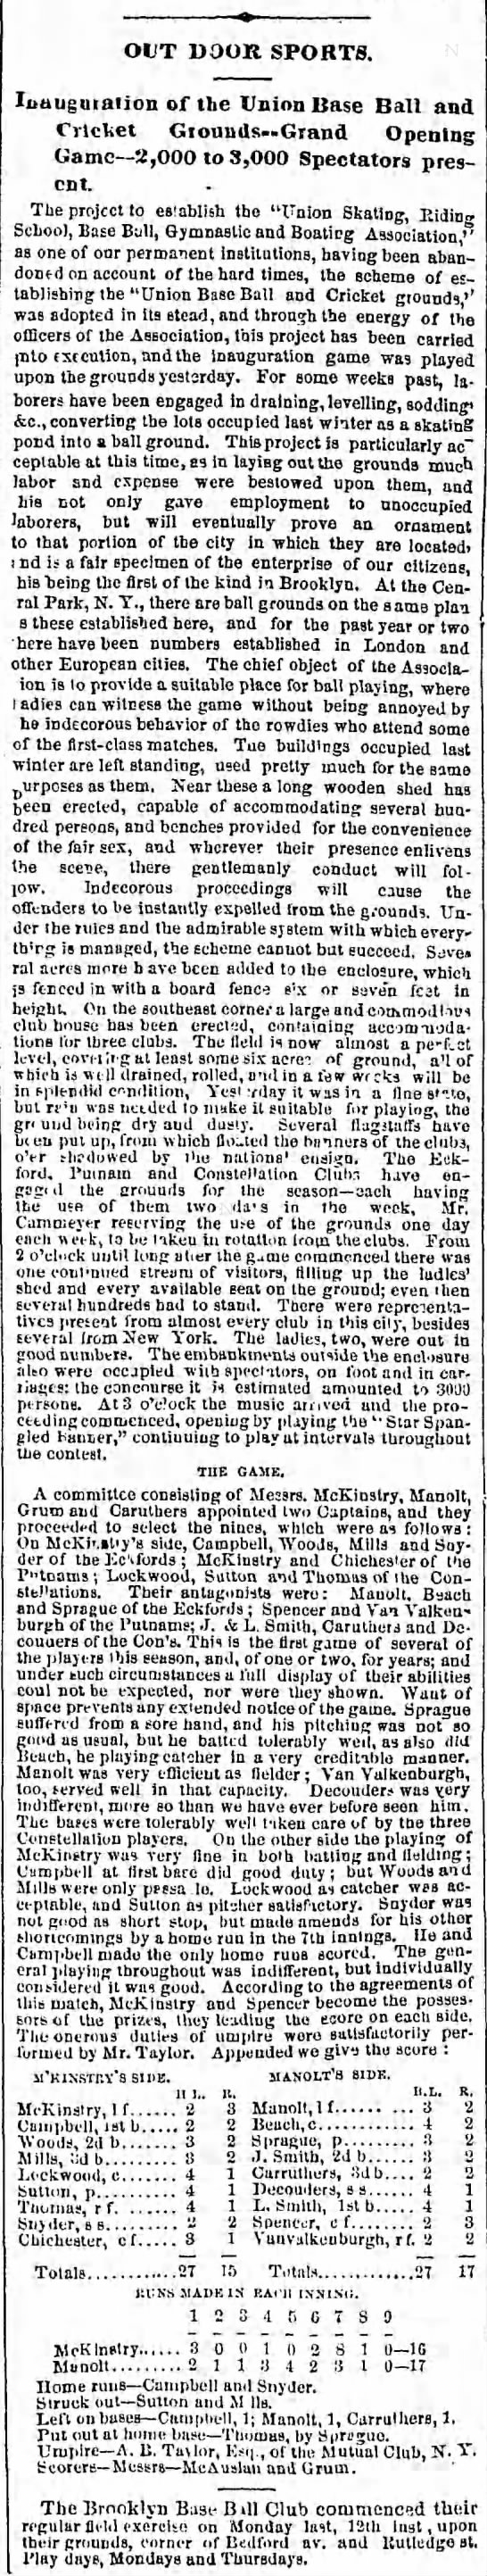 1862-Brooklyn Daily Eagle-First SSB in Baseball -